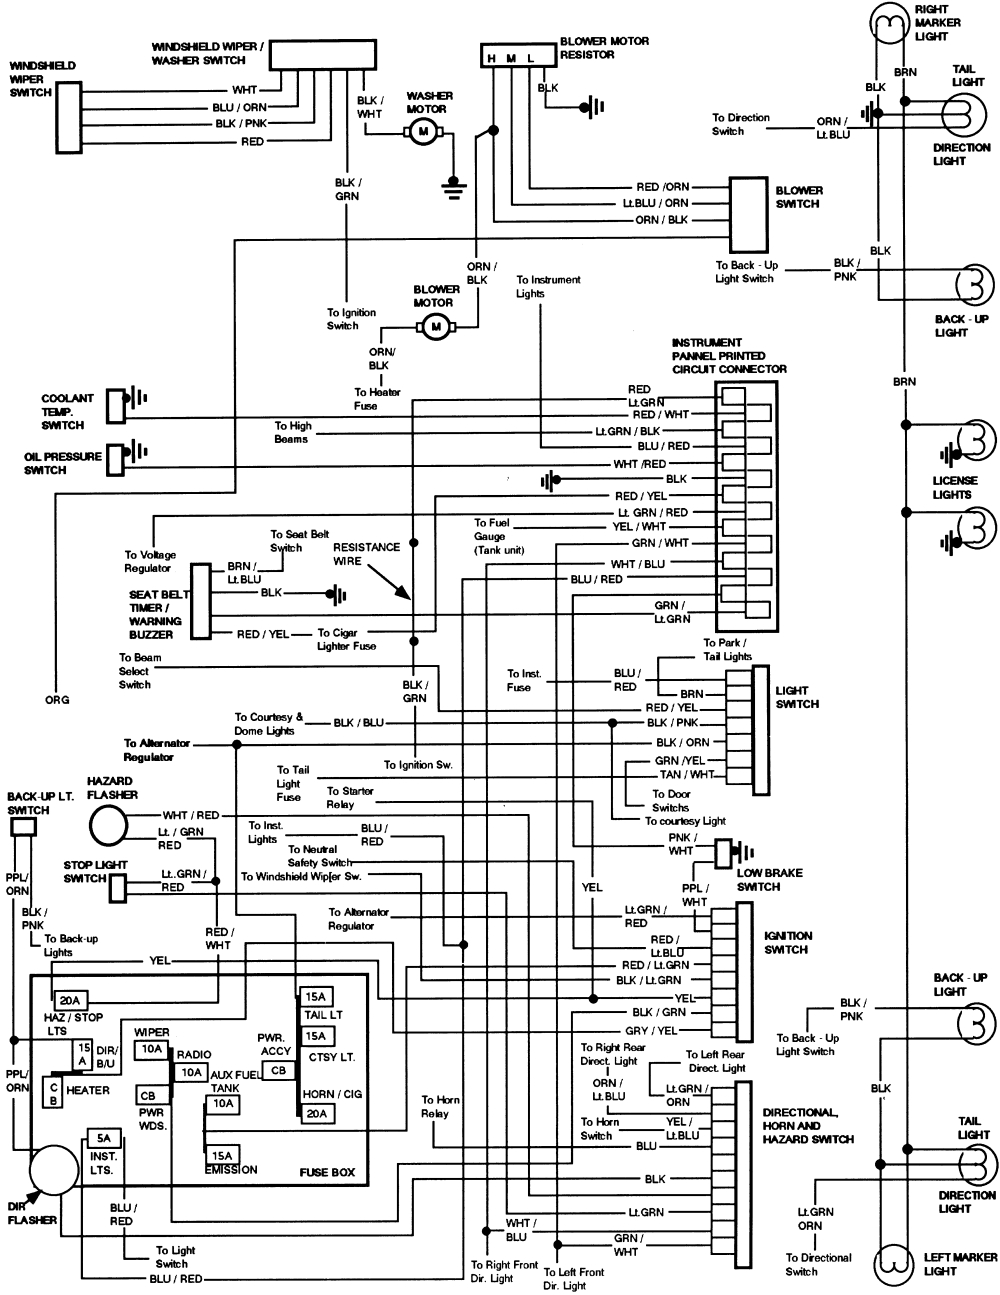 2014 f150 crew chief wiring diagram